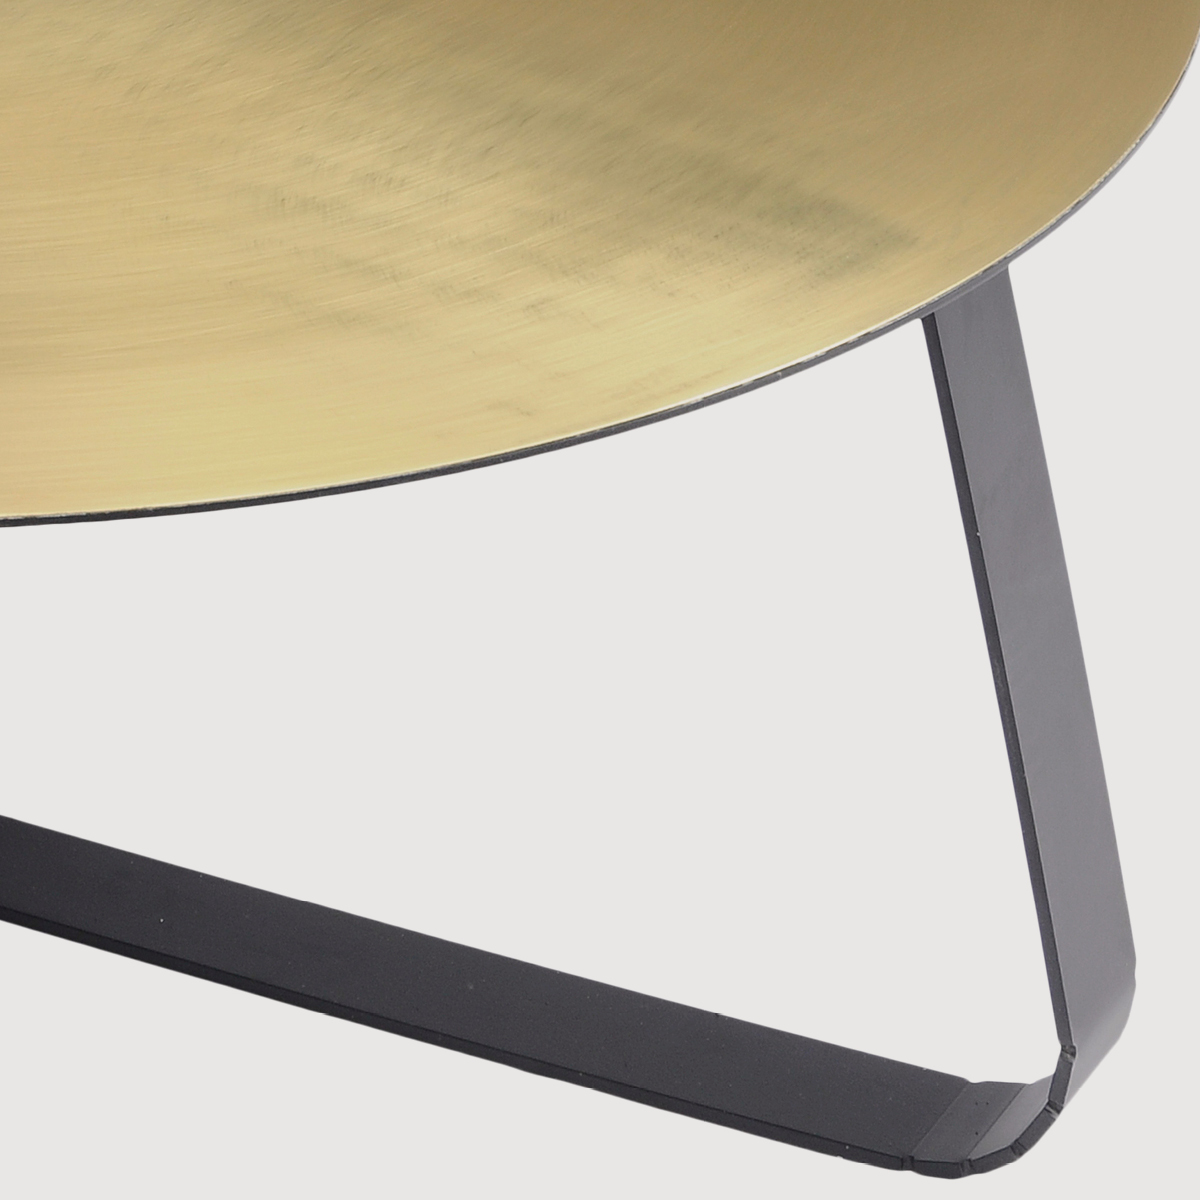 Bloomsbury Brass Coffee Table – Large gallery image